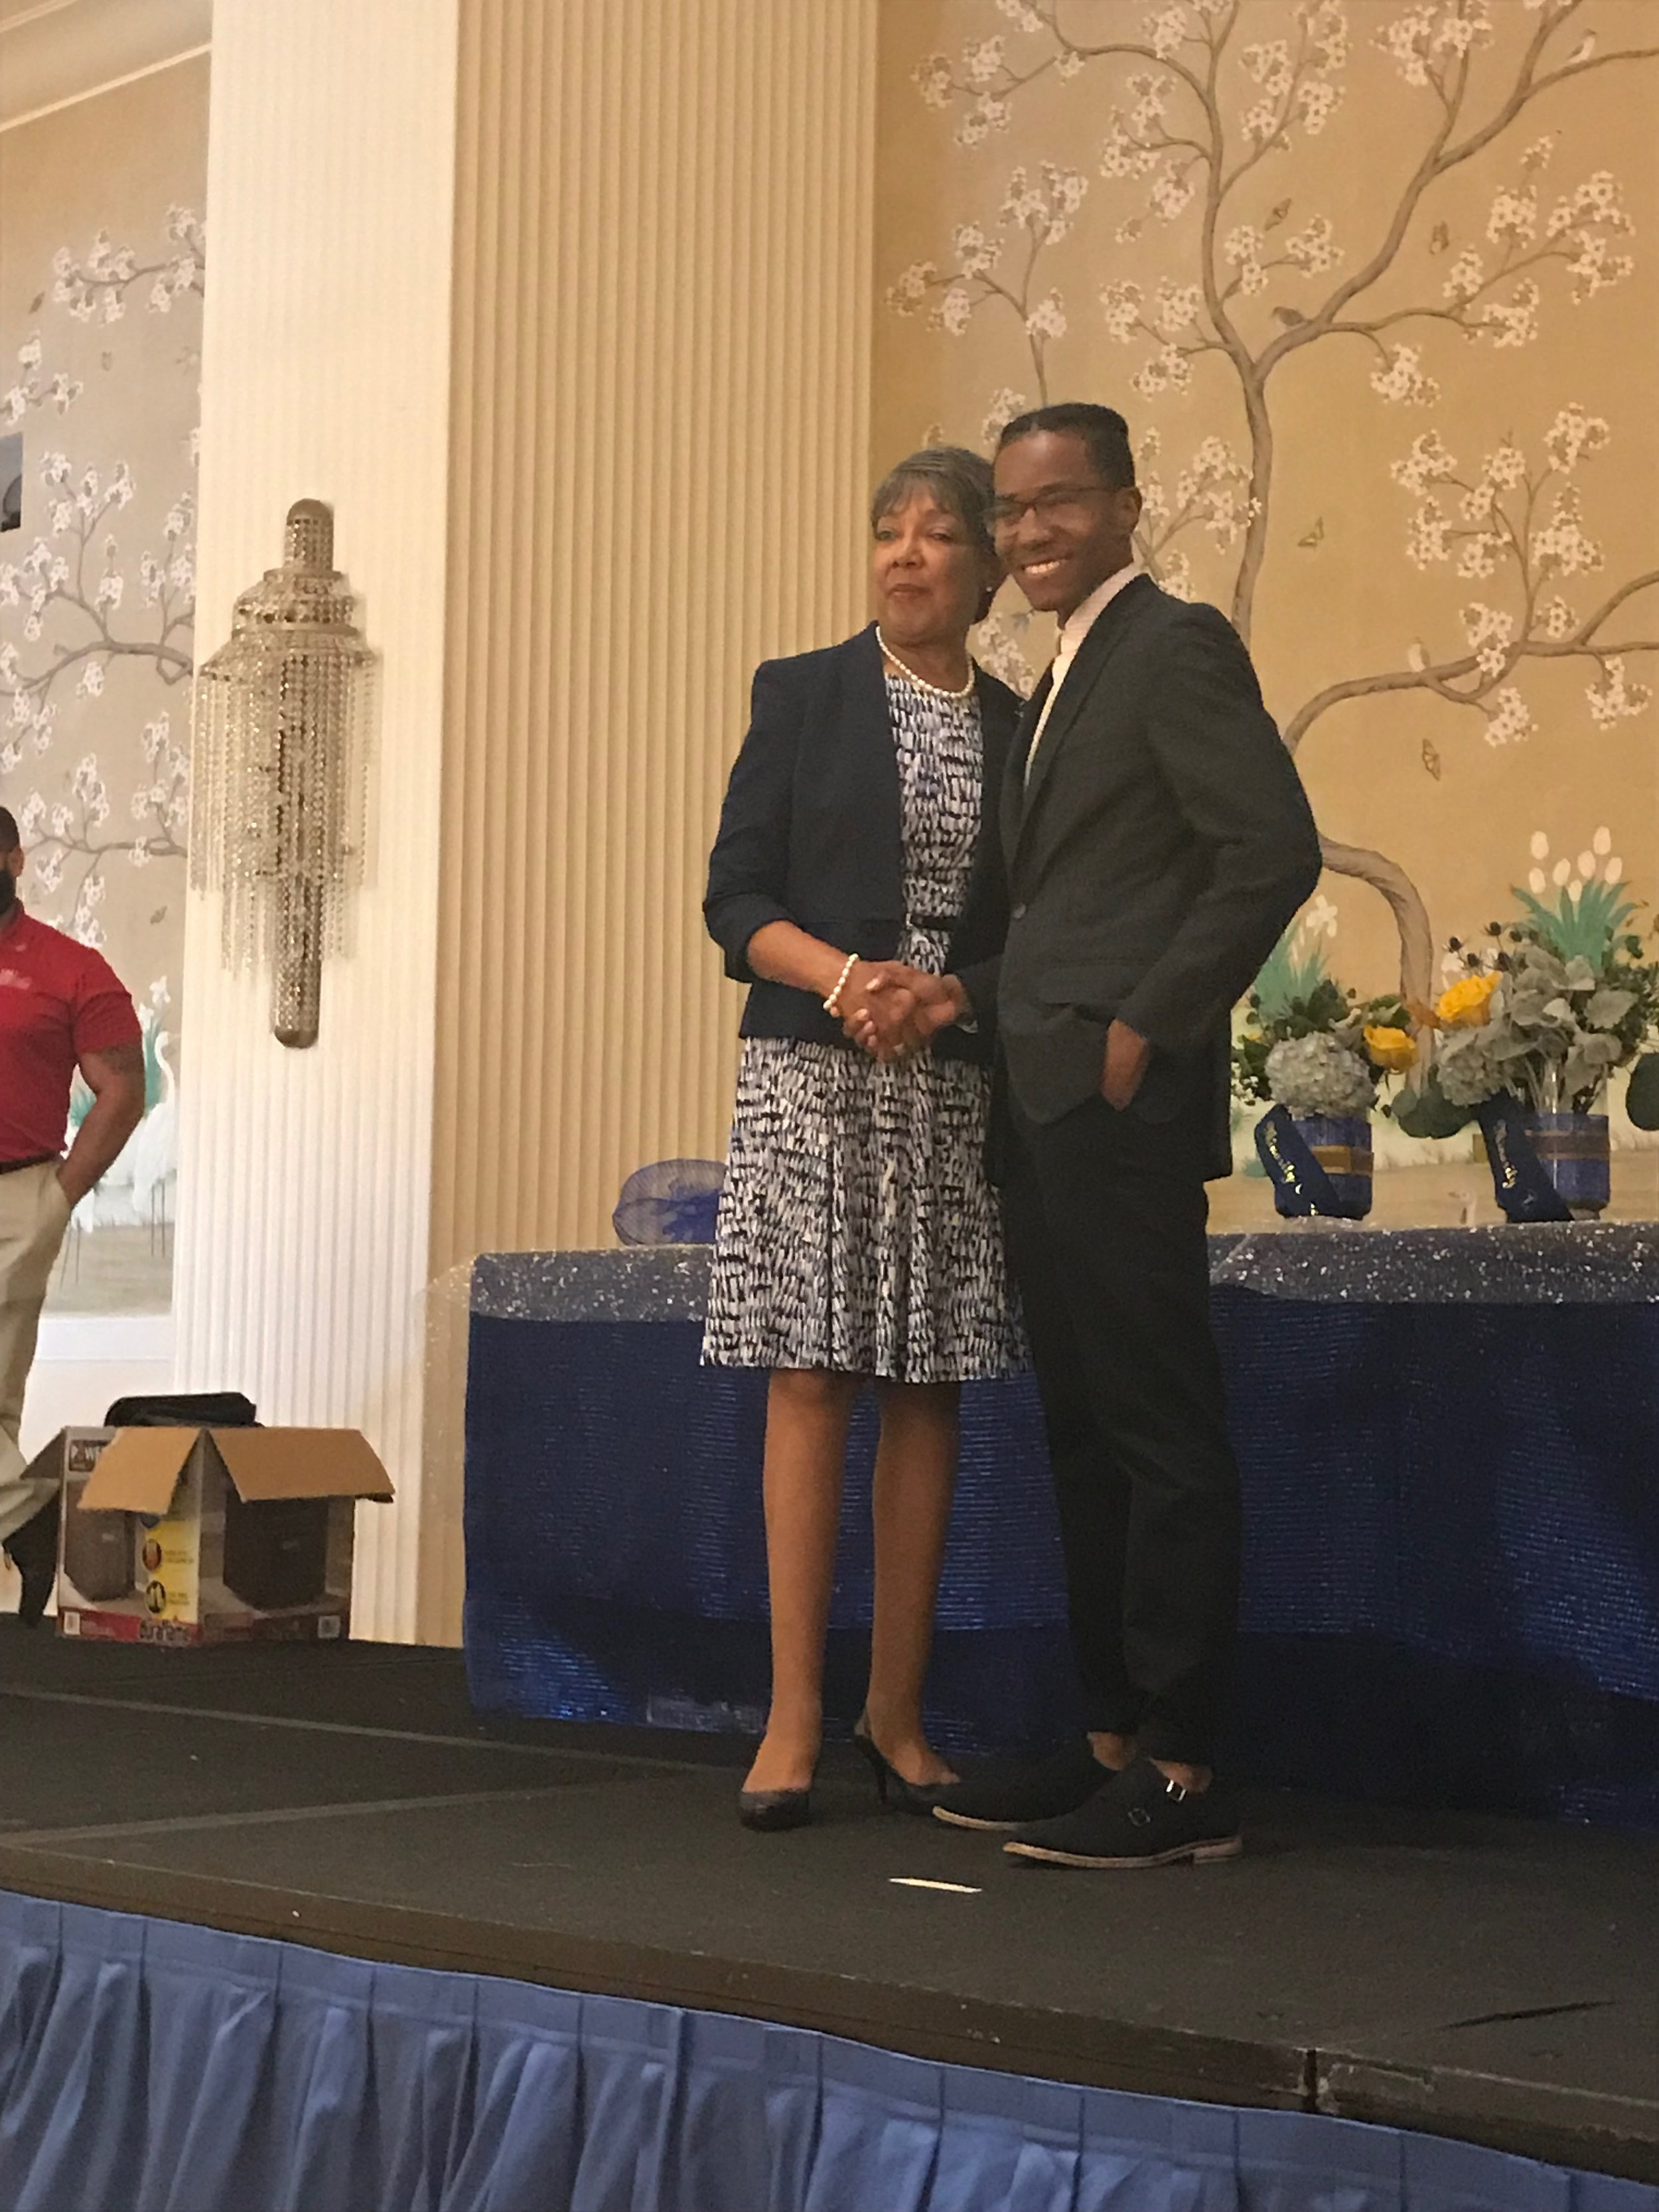 Derek receiving his first place award at the National Role Models Conference in Washington, D.C.